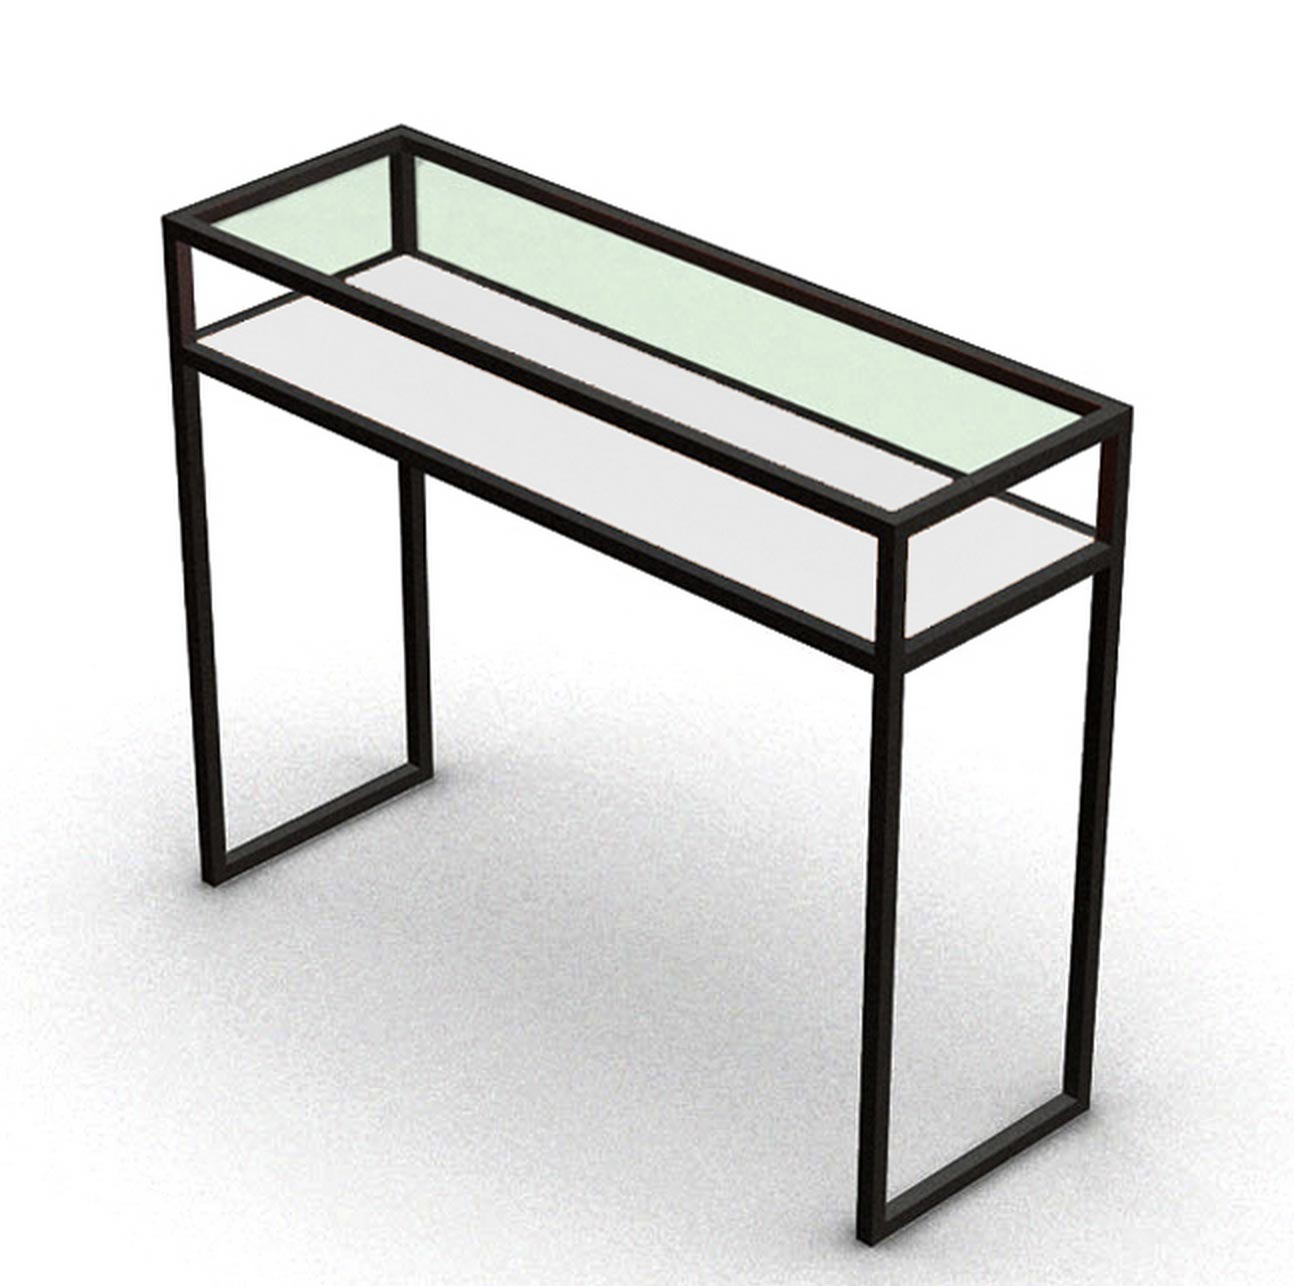 STAPLE 2 table from FKTURA